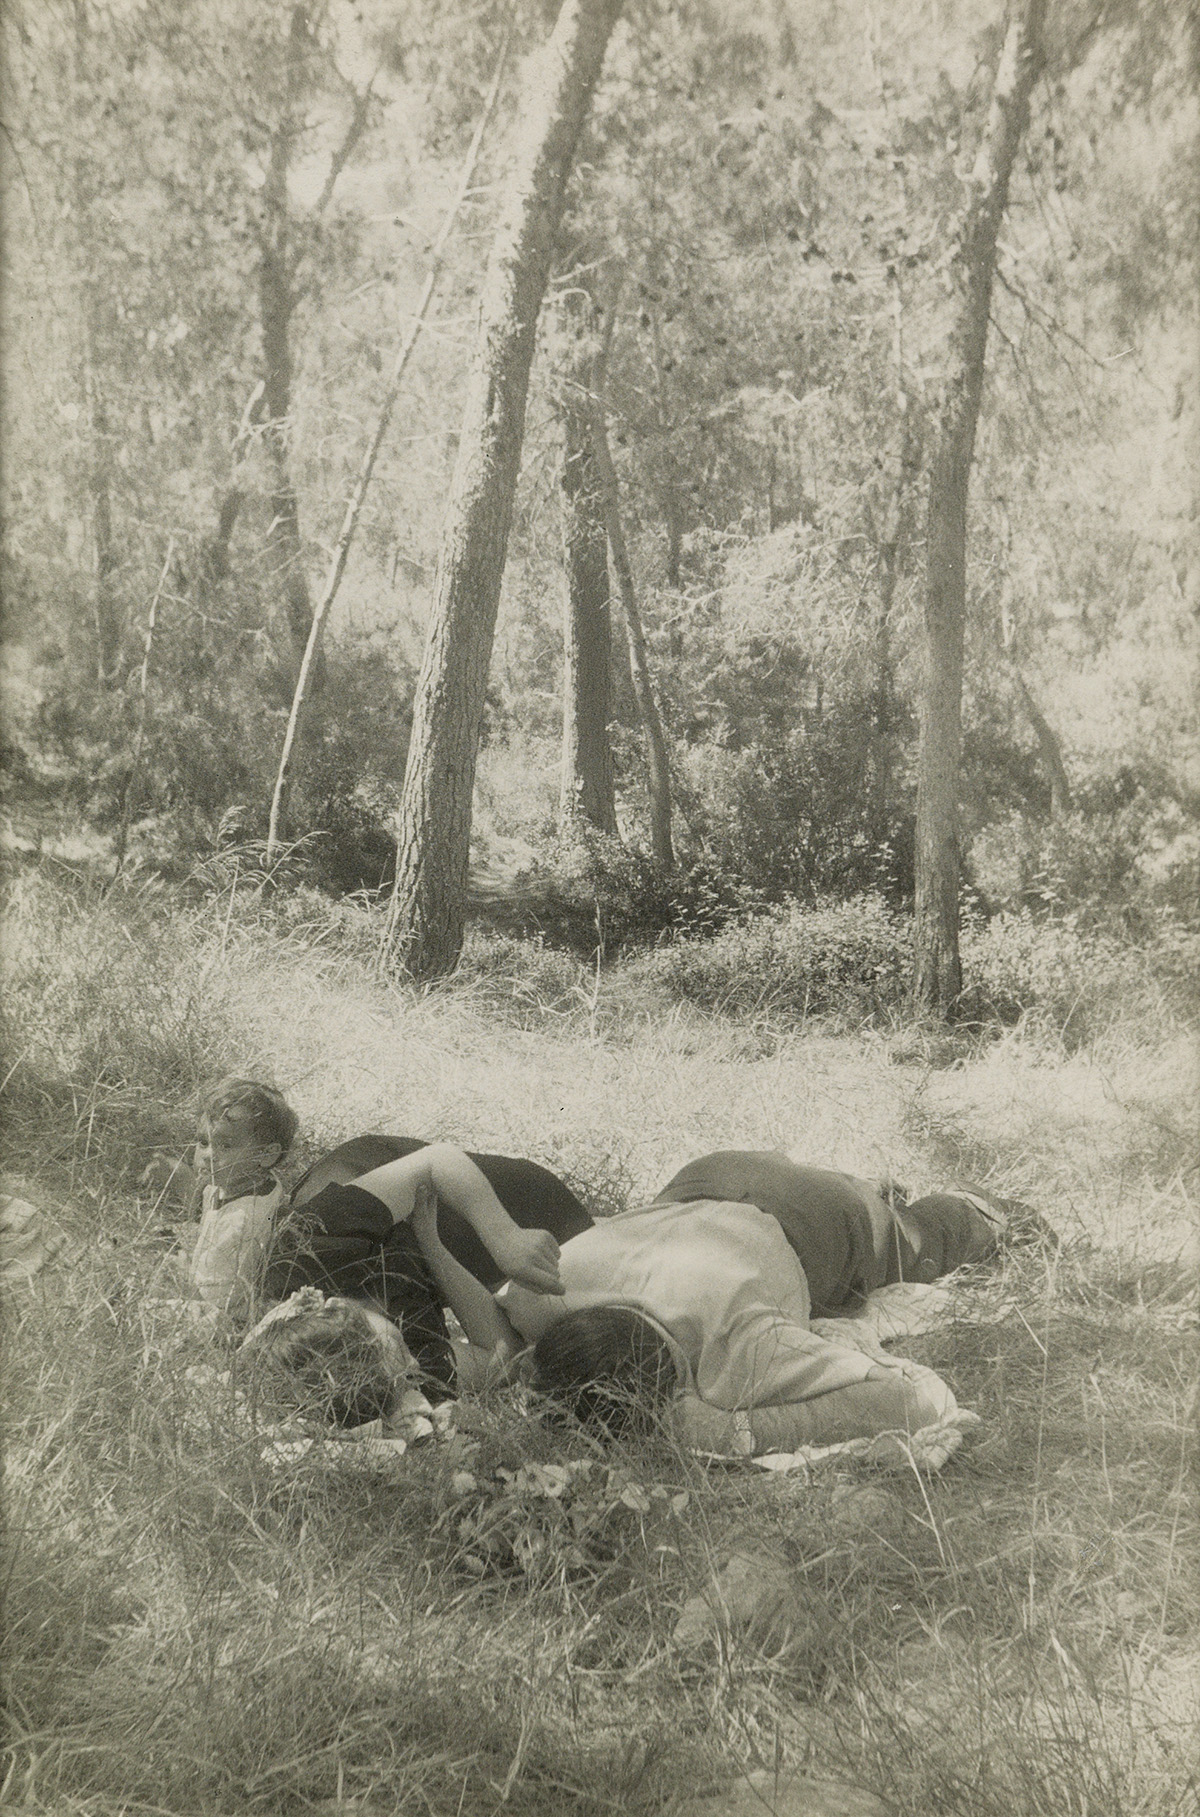 ROBERT-FRANK-(1924--)-Idyll-in-the-Woods-Spain